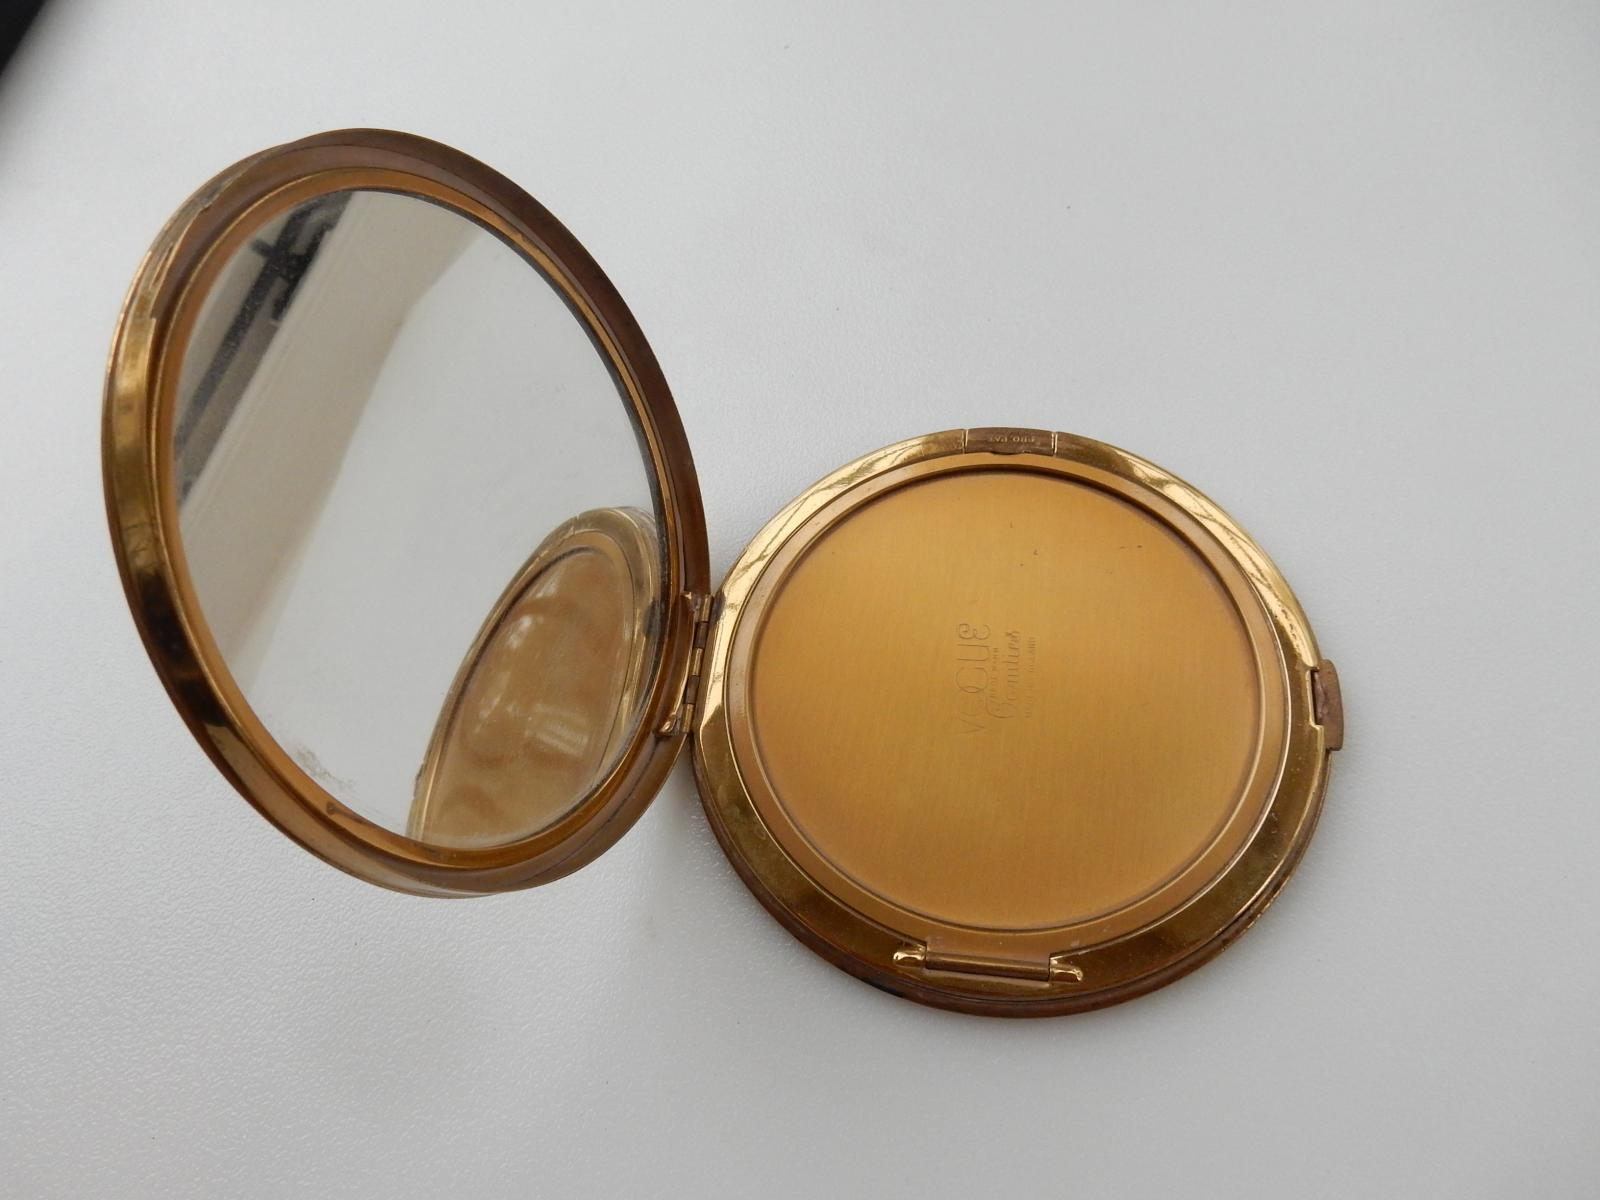 Photo of Vintage Vogue Vanities Powder Compact